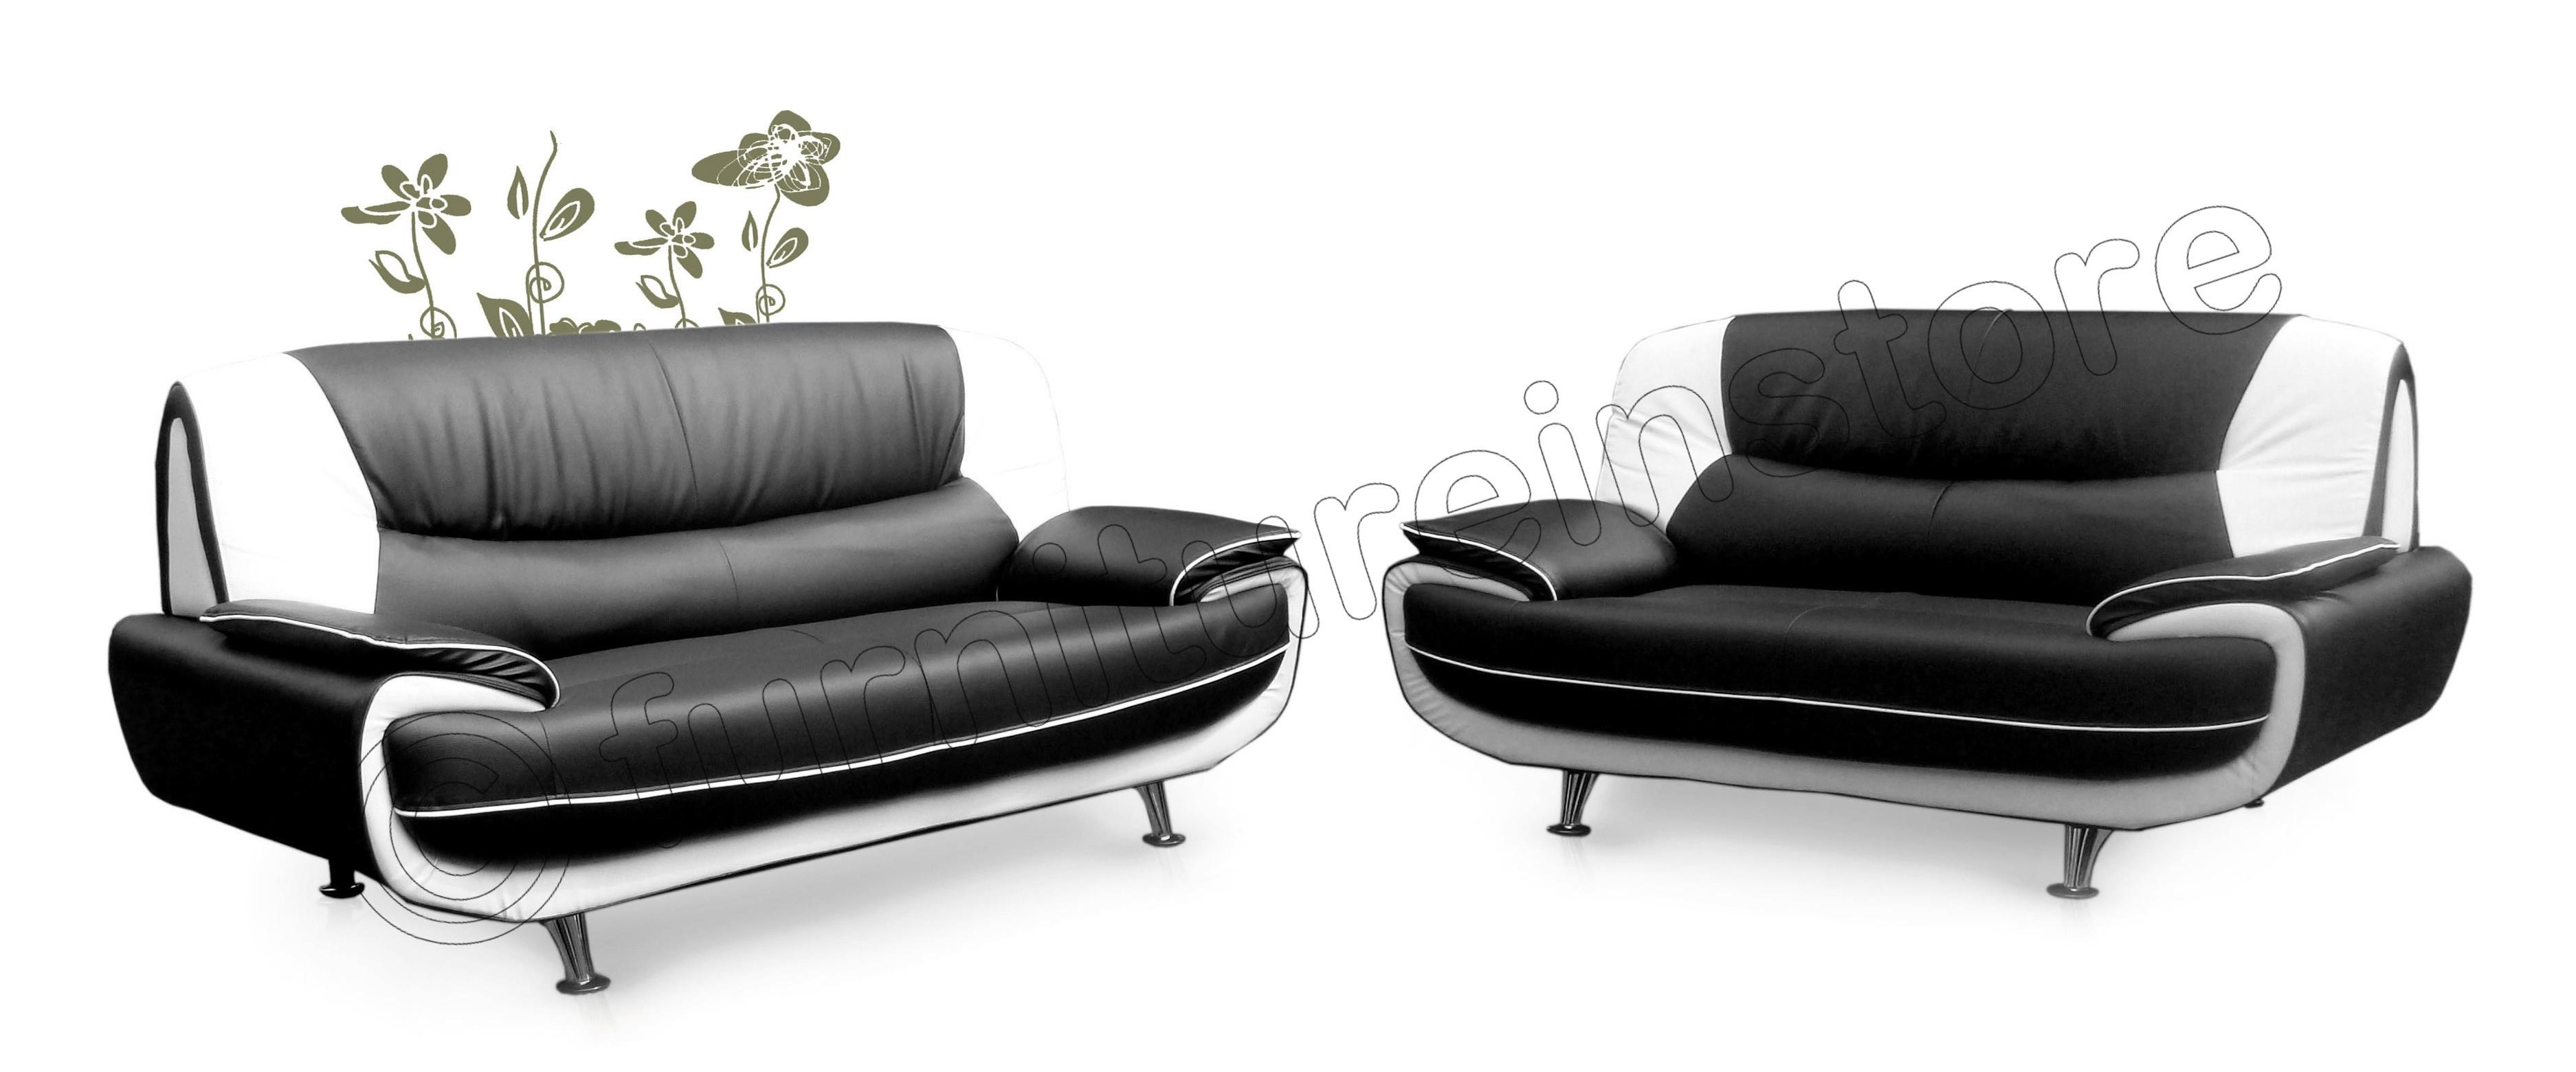 Black And White Sofa With Ideas Photo 2881 | Imonics With Regard To White And Black Sofas (Image 13 of 21)